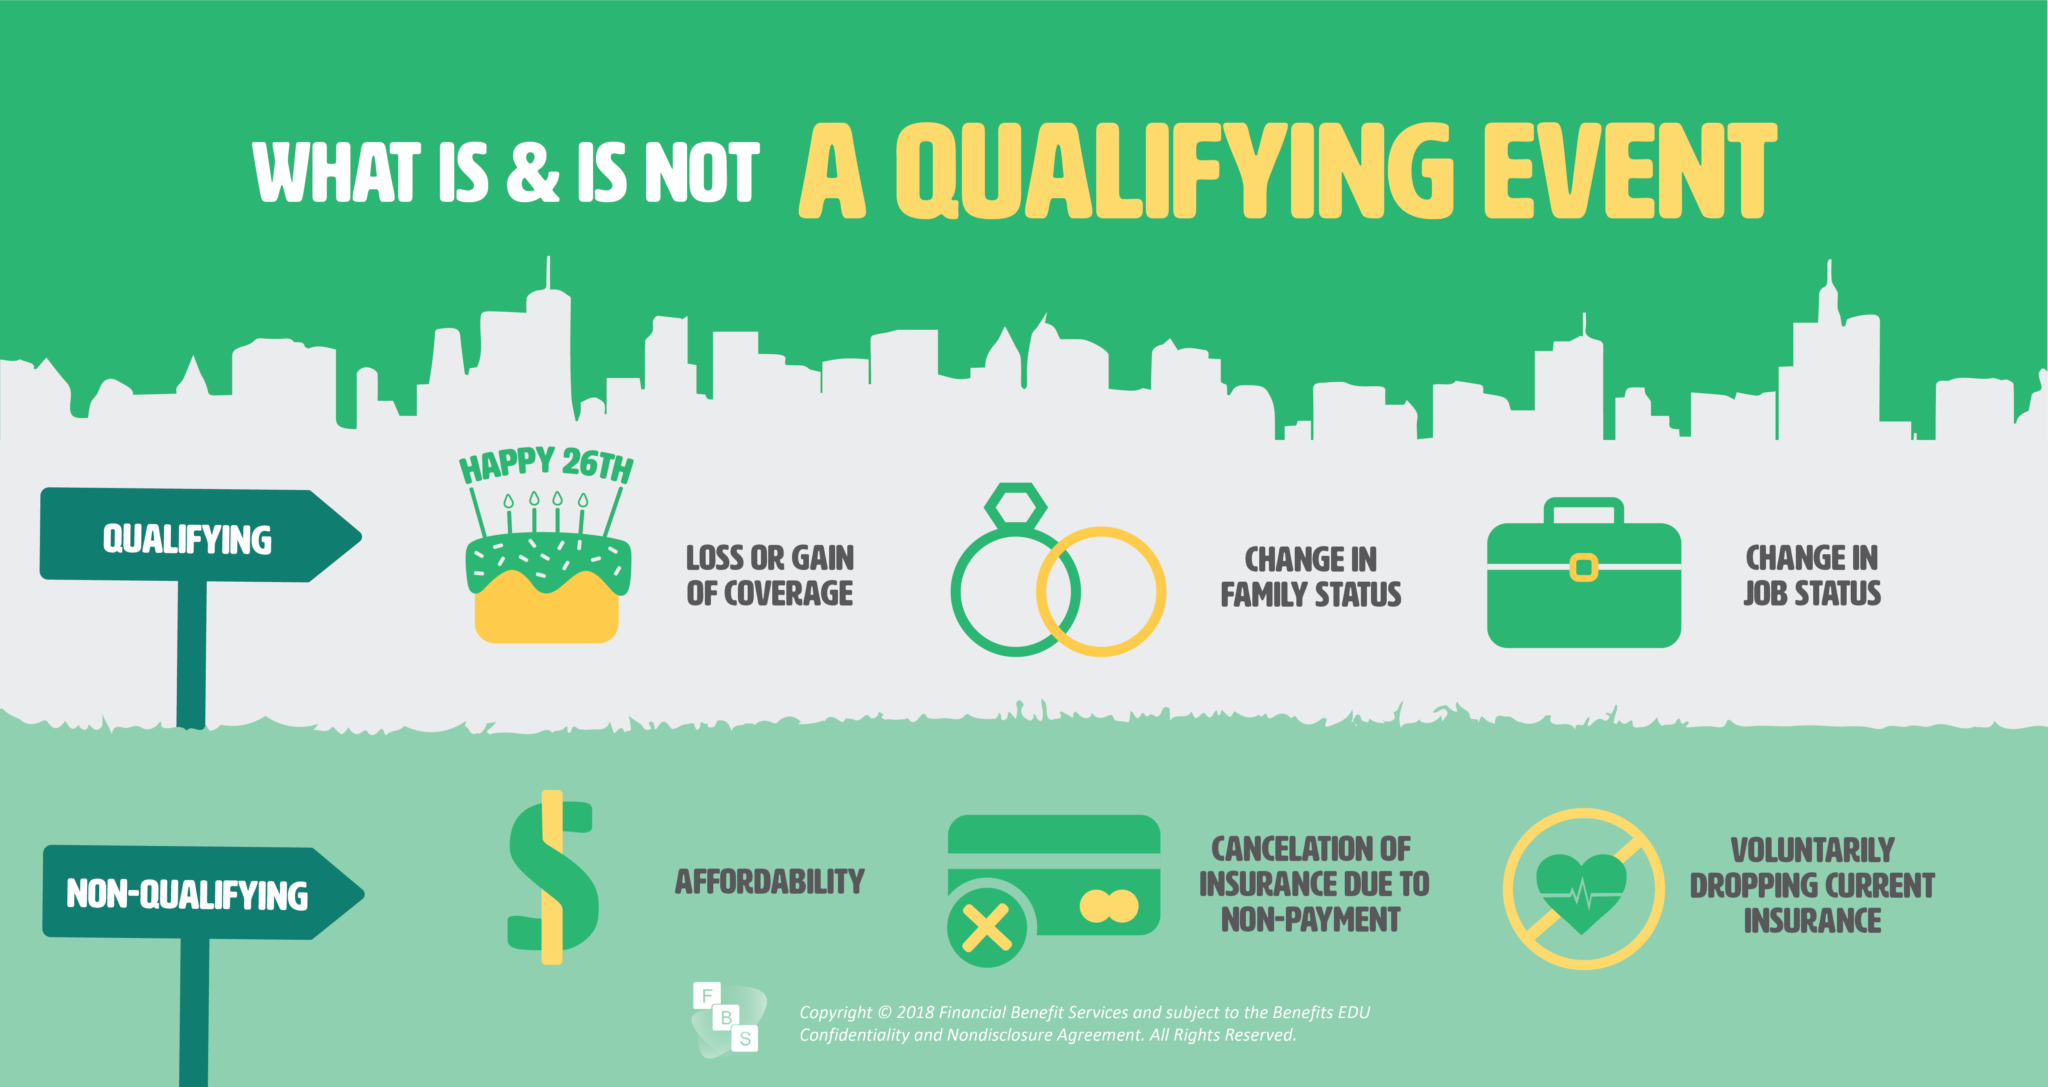 Benefits A Z Qualifying Life Event Financial Benefit Services